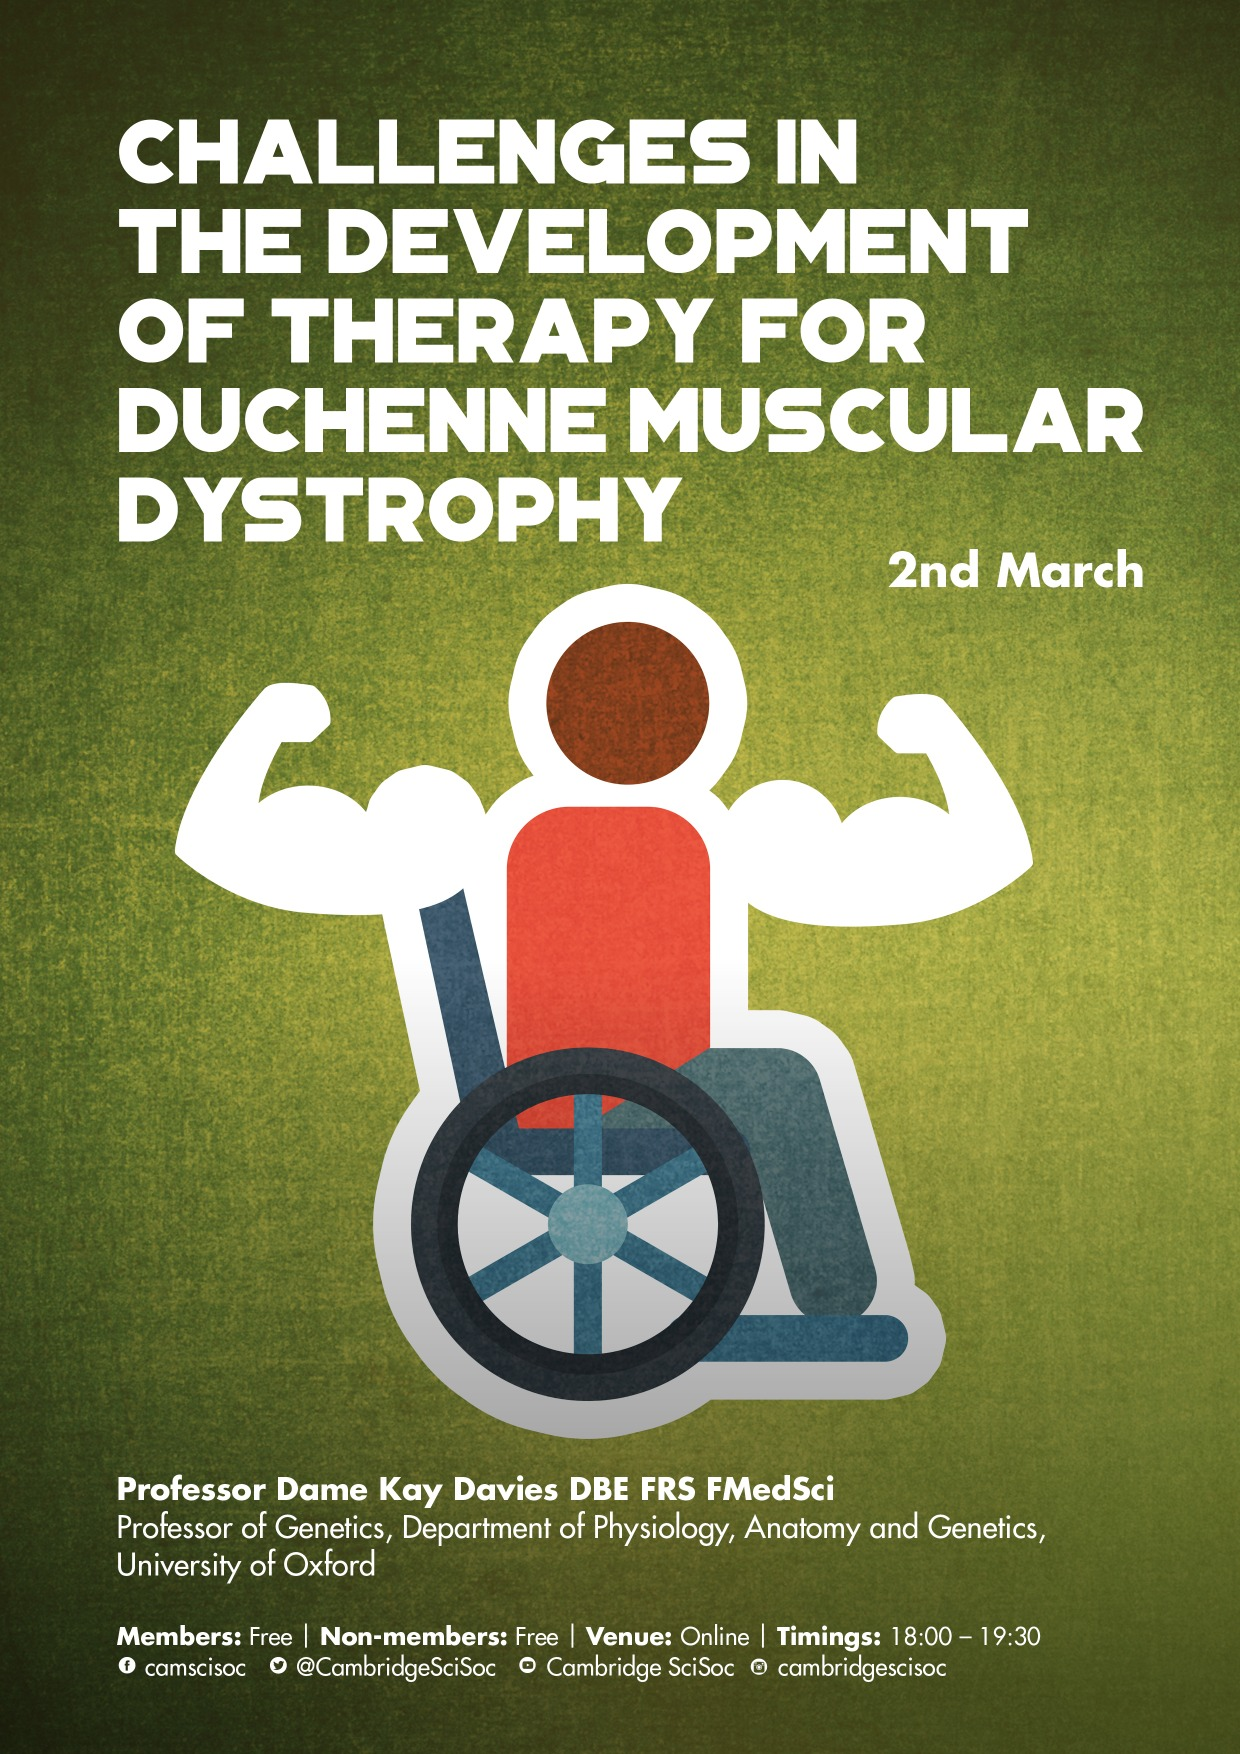 Challenges in the development of therapy for Duchenne muscular dystrophy